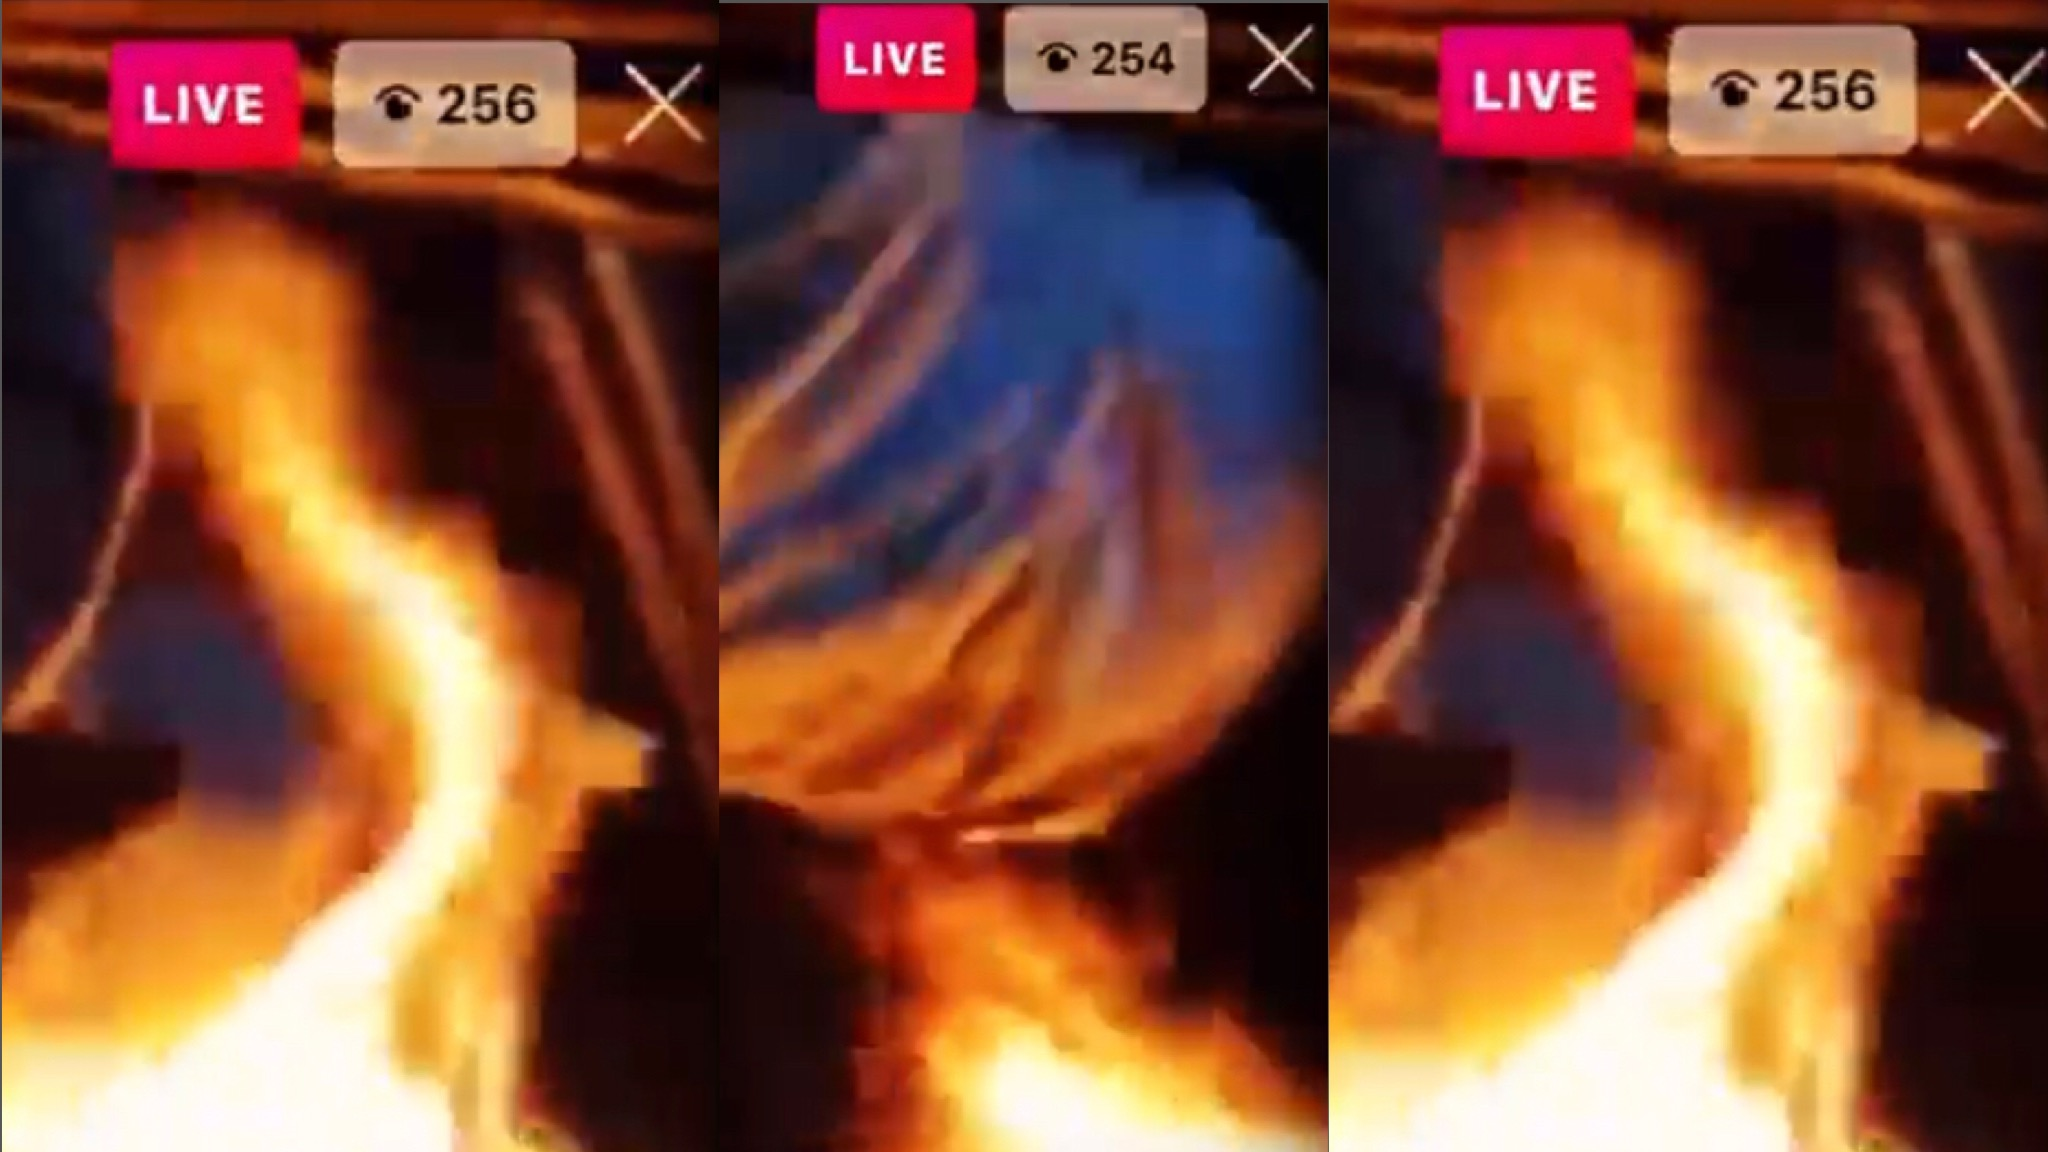 (Graphic Video) Thug Burnt His Opp Alive On Live!